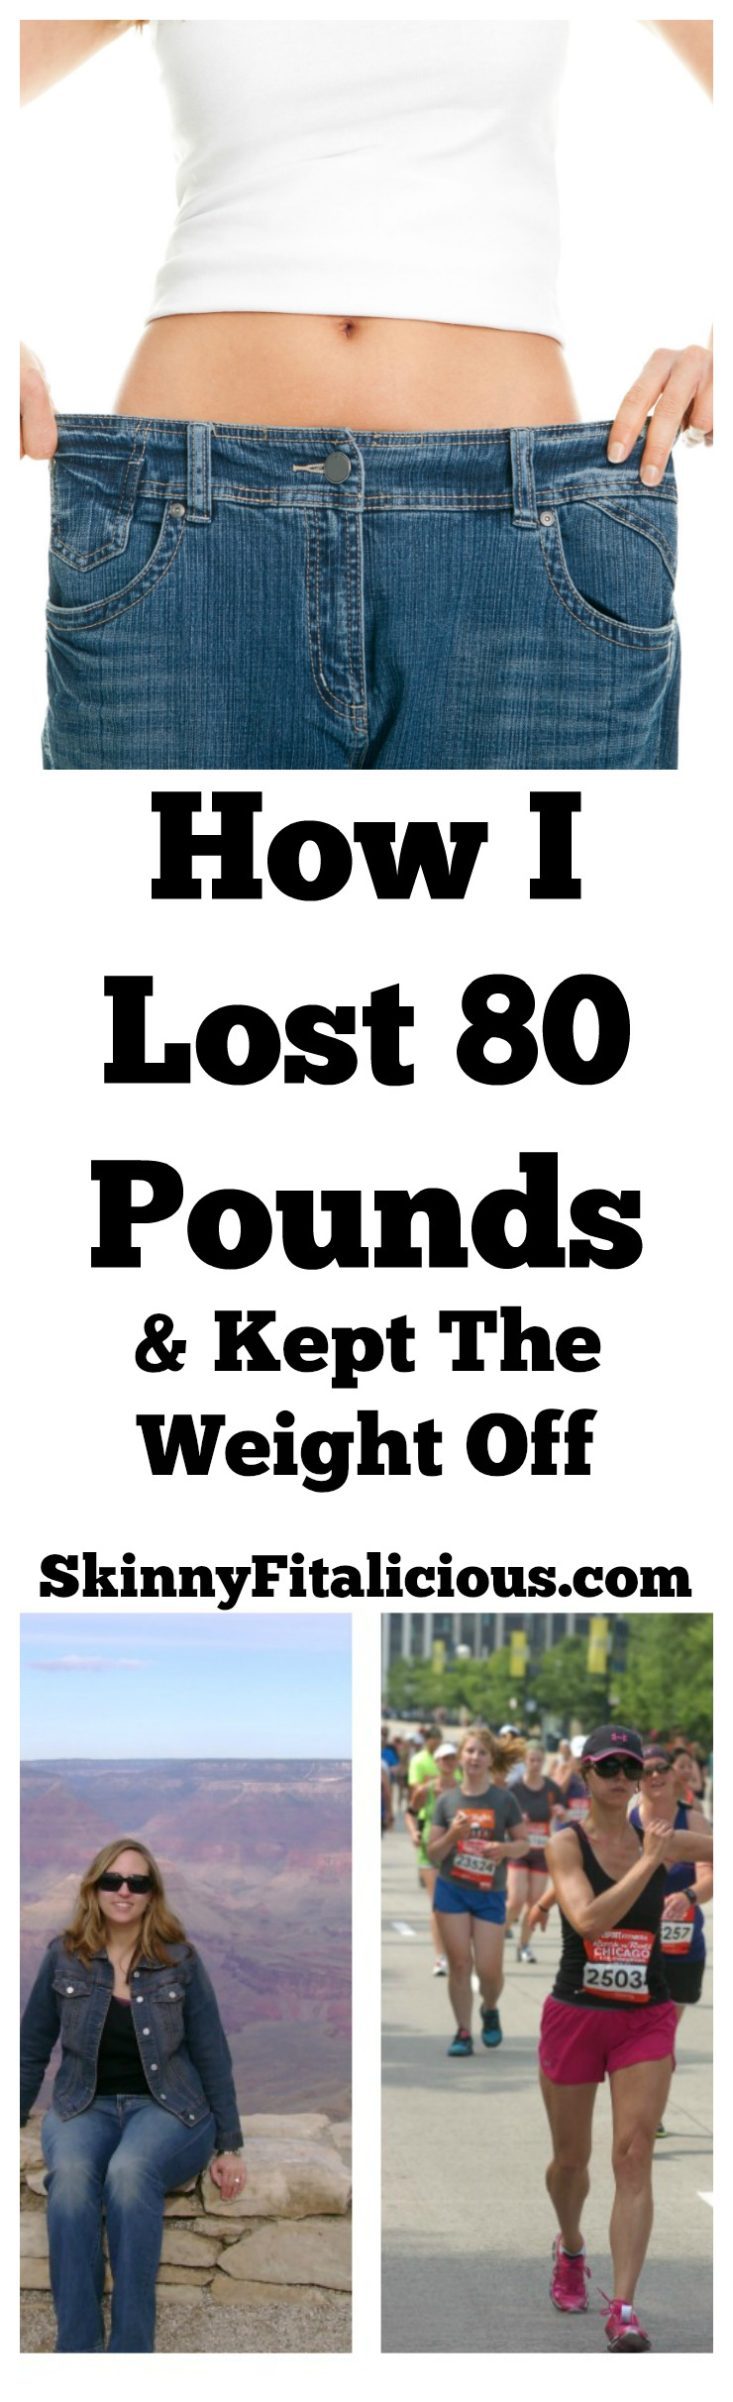 After committing to eating right and exercising, I went from a size 14 to a size 2 and lost 80 pounds in a year. This is how I lost 80 pounds.